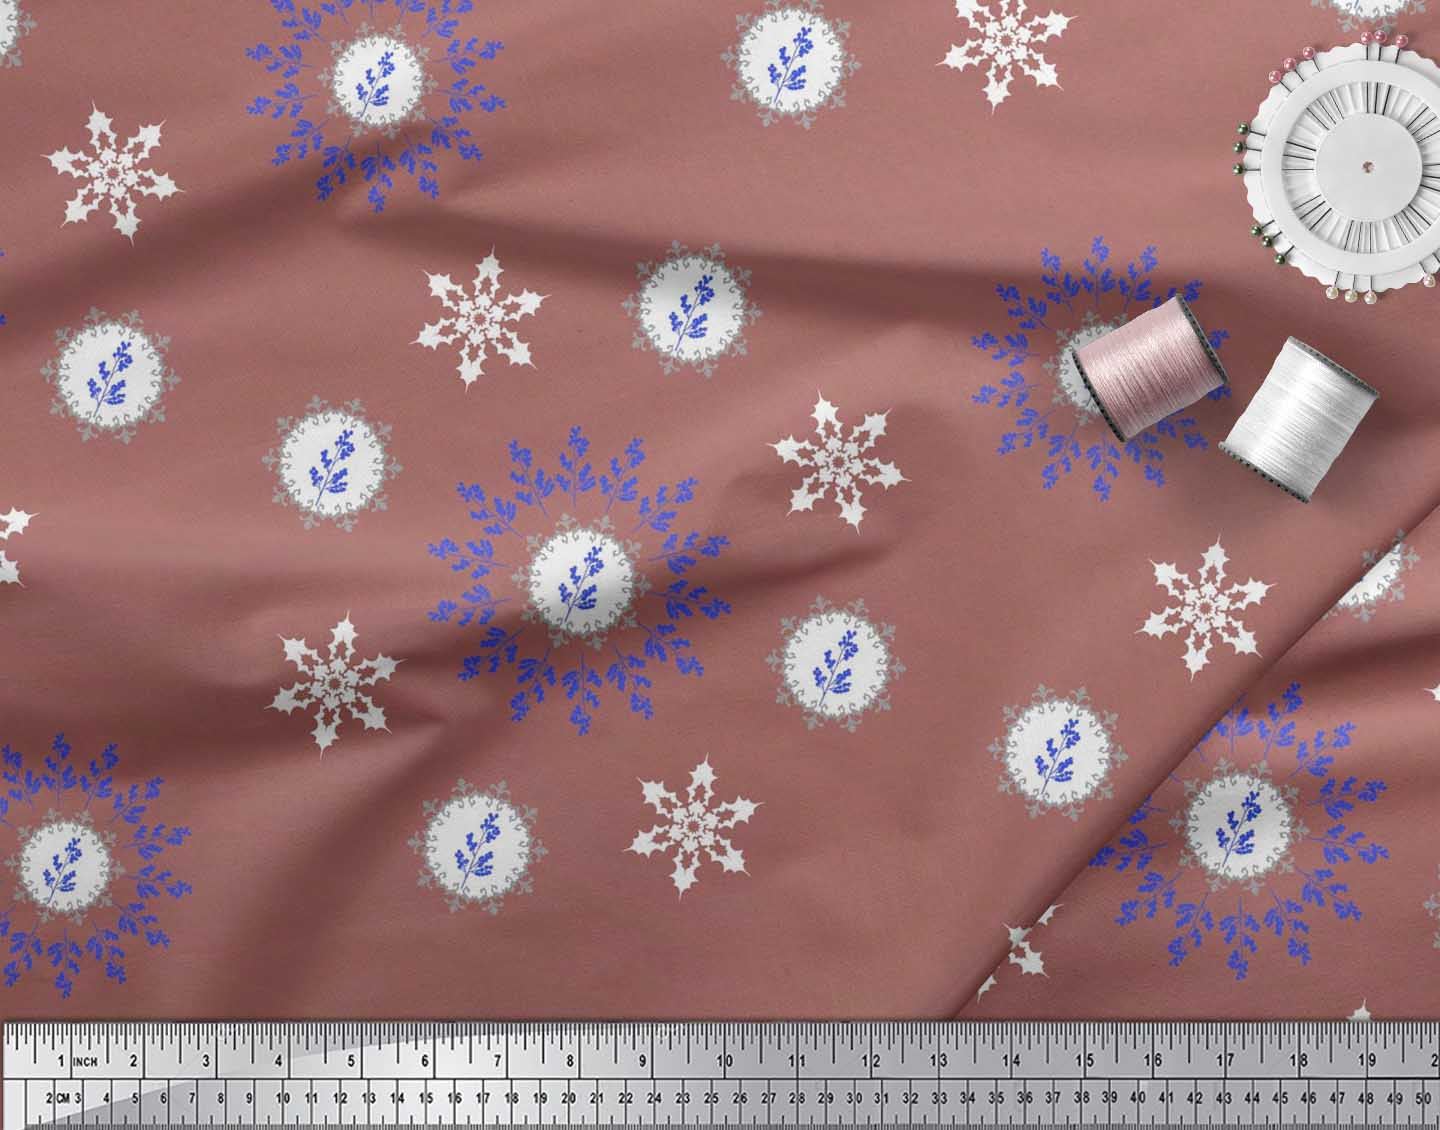 Soimoi-Fabric-Berries-amp-Damask-Decorative-Printed-Craft-Fabric-bty-DC-513A thumbnail 13